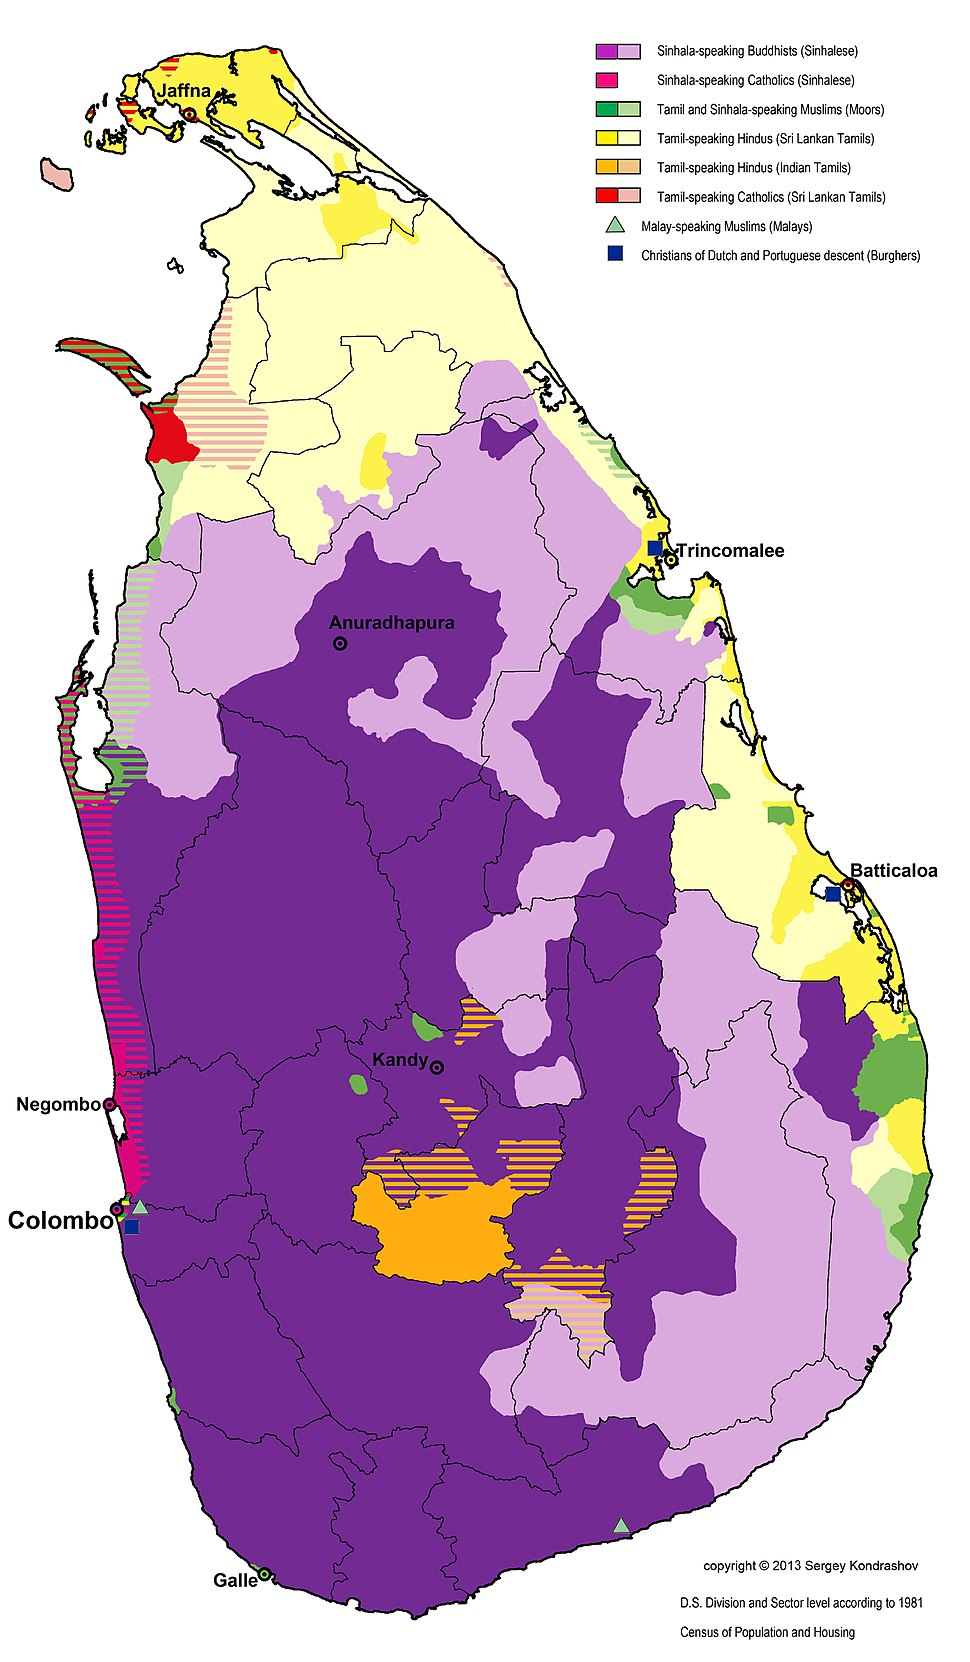 Distribution of Languages and Religious groups of Sri Lanka 1981